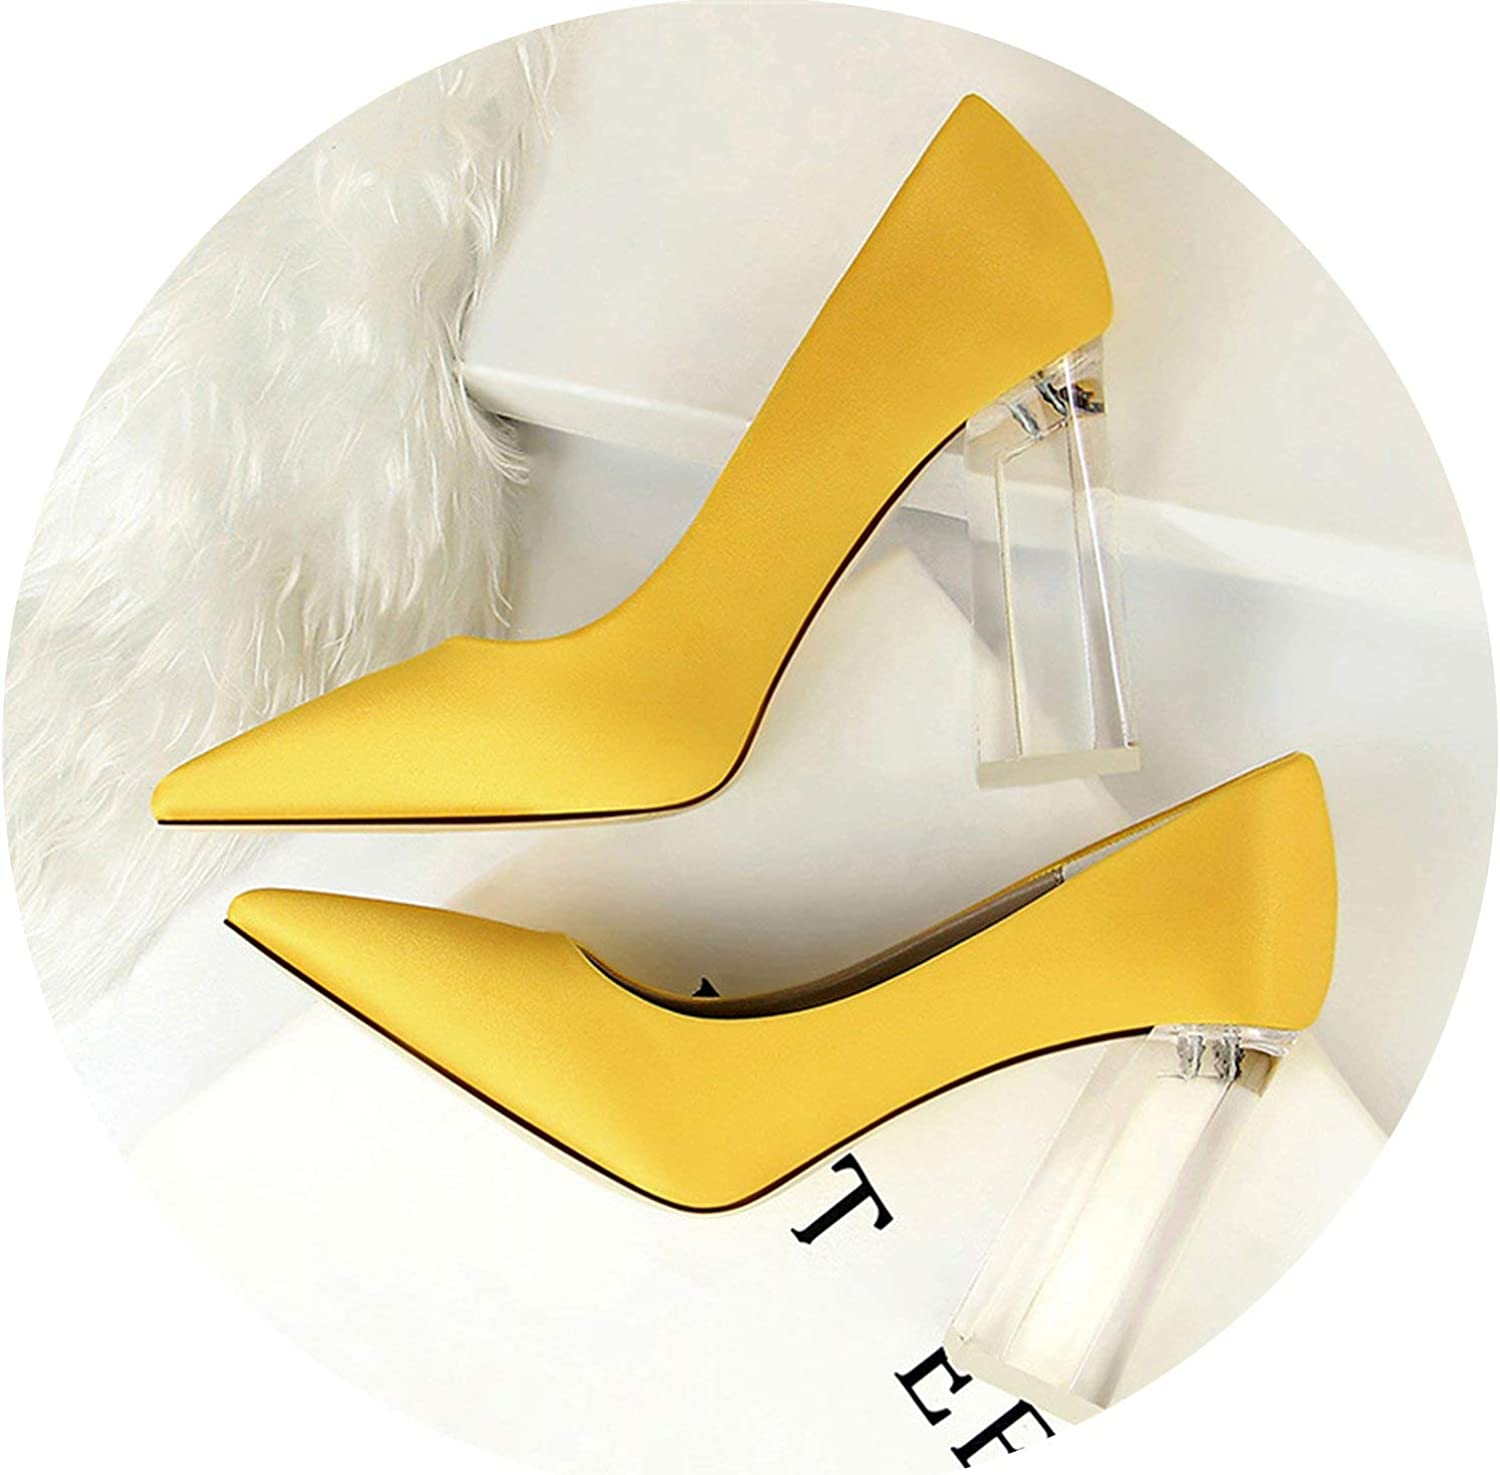 HANBINGPO New Pointed Toe Transparent Block High Heels Stain Yellow Pumps Escarpins Women Fall Spring Elegant Lady Office Party shoes,Yellow,4